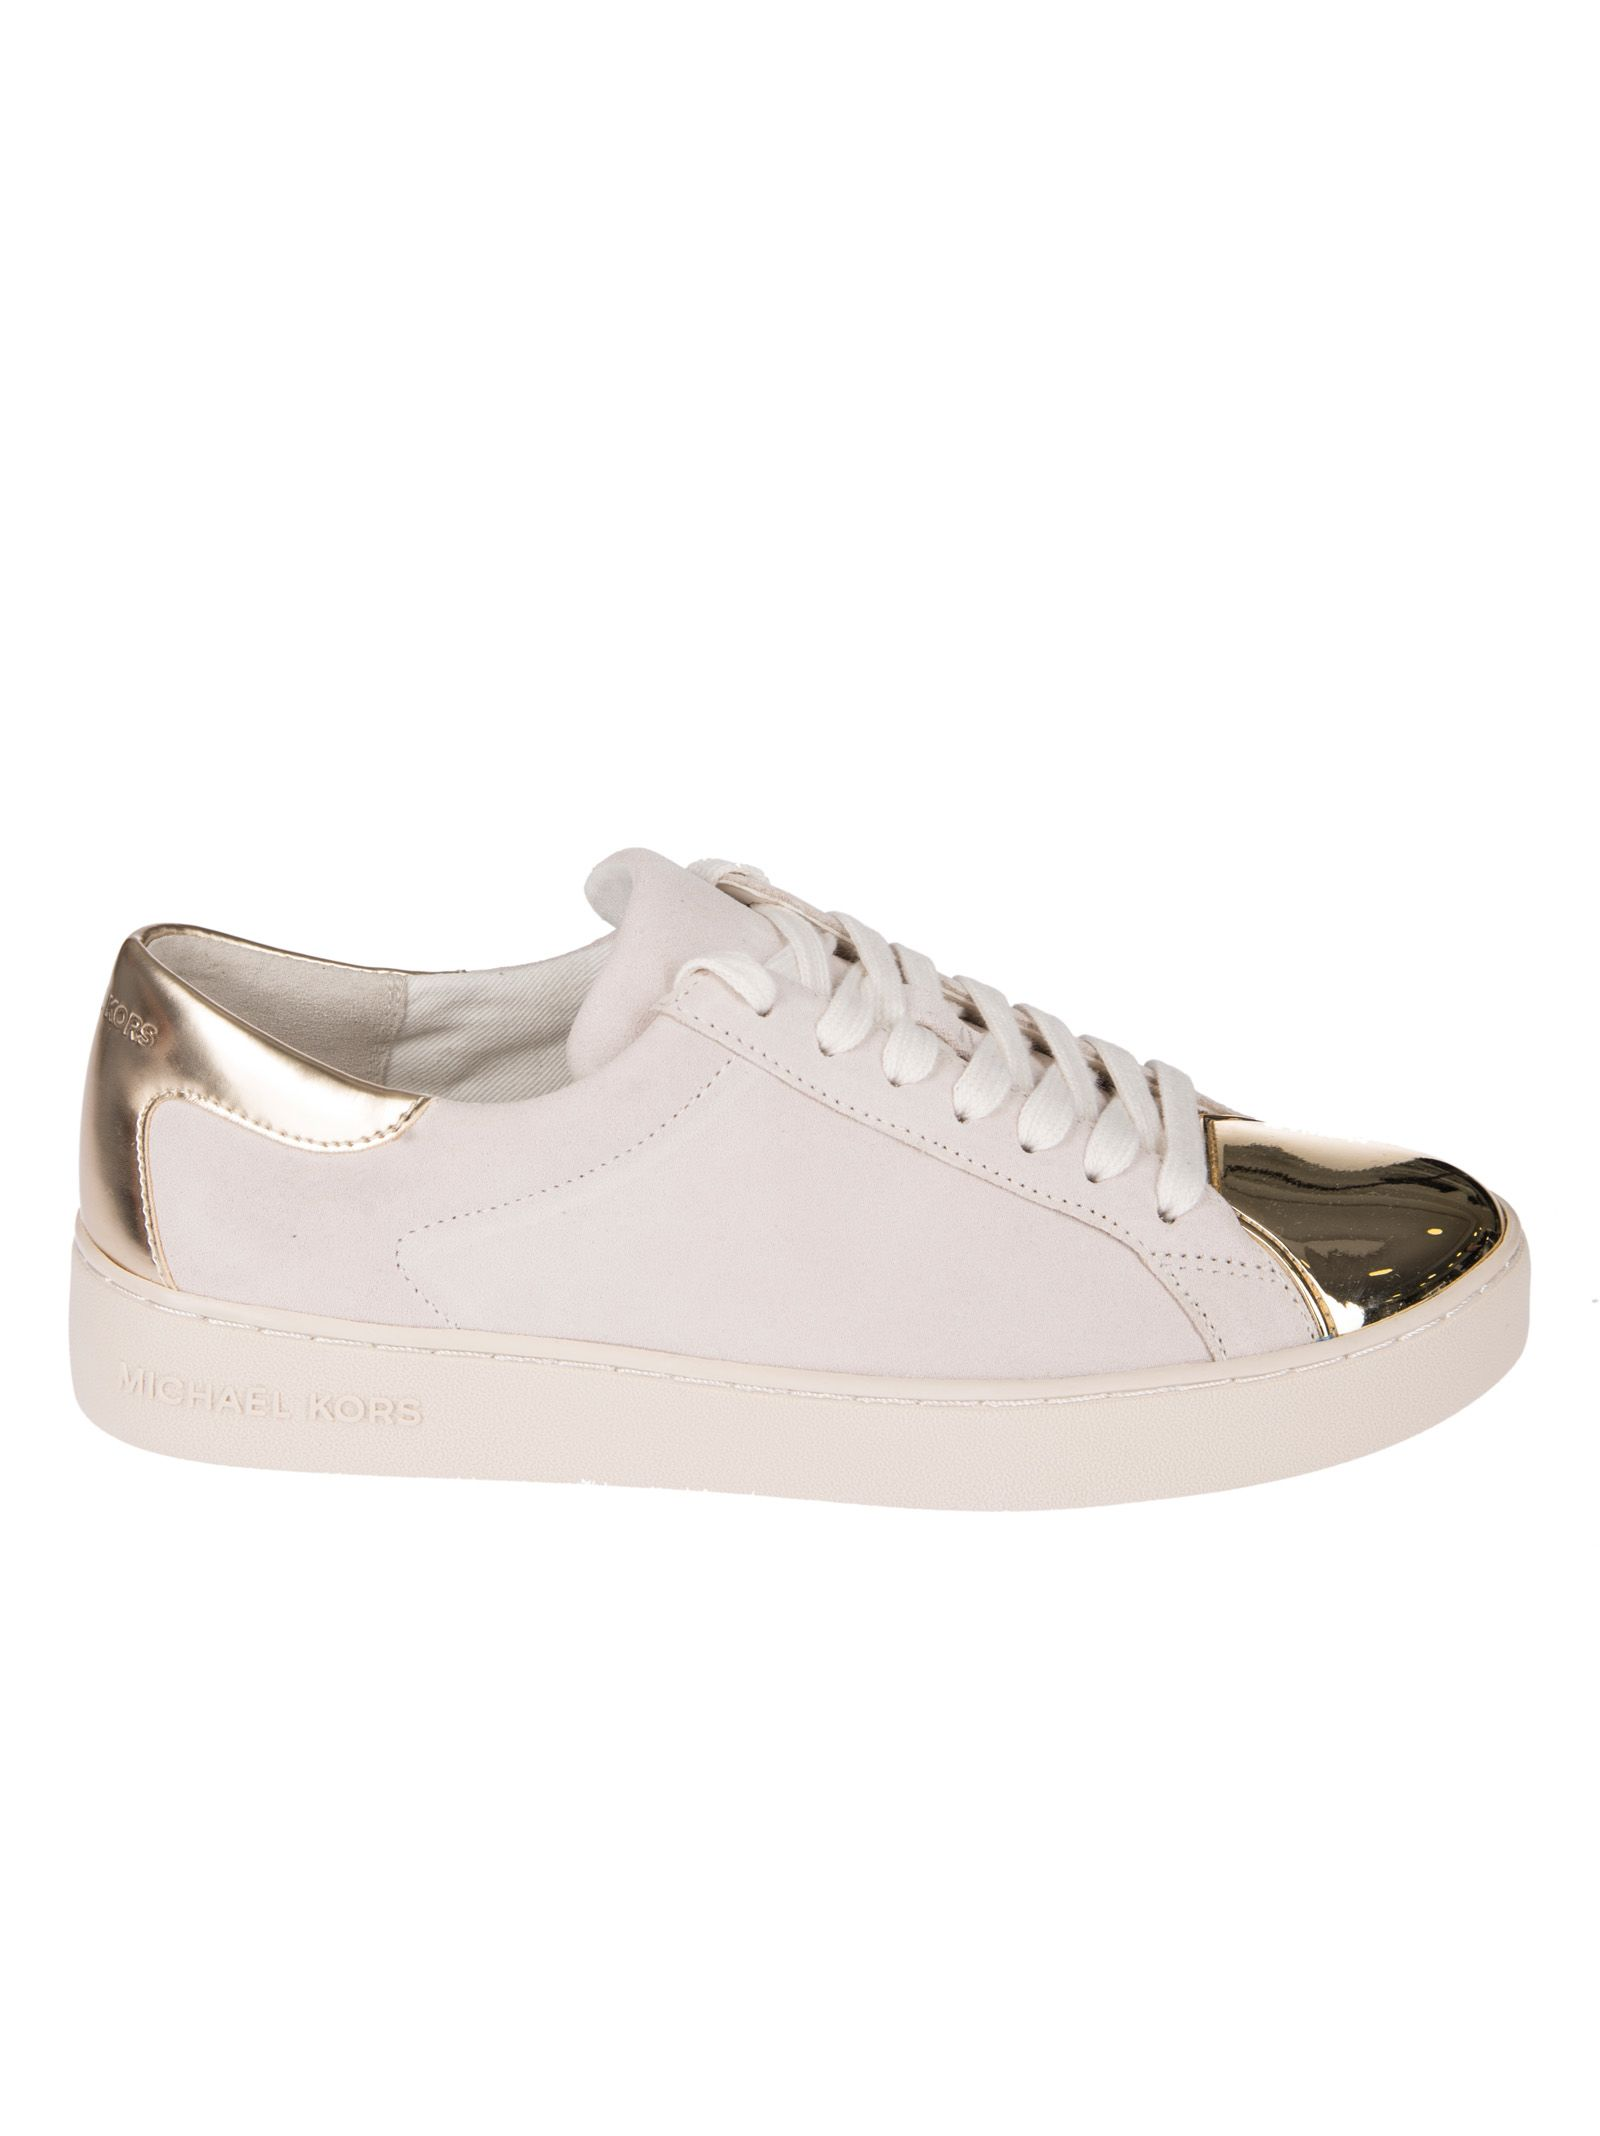 Michael Michael Kors Metallic Detail Sneakers